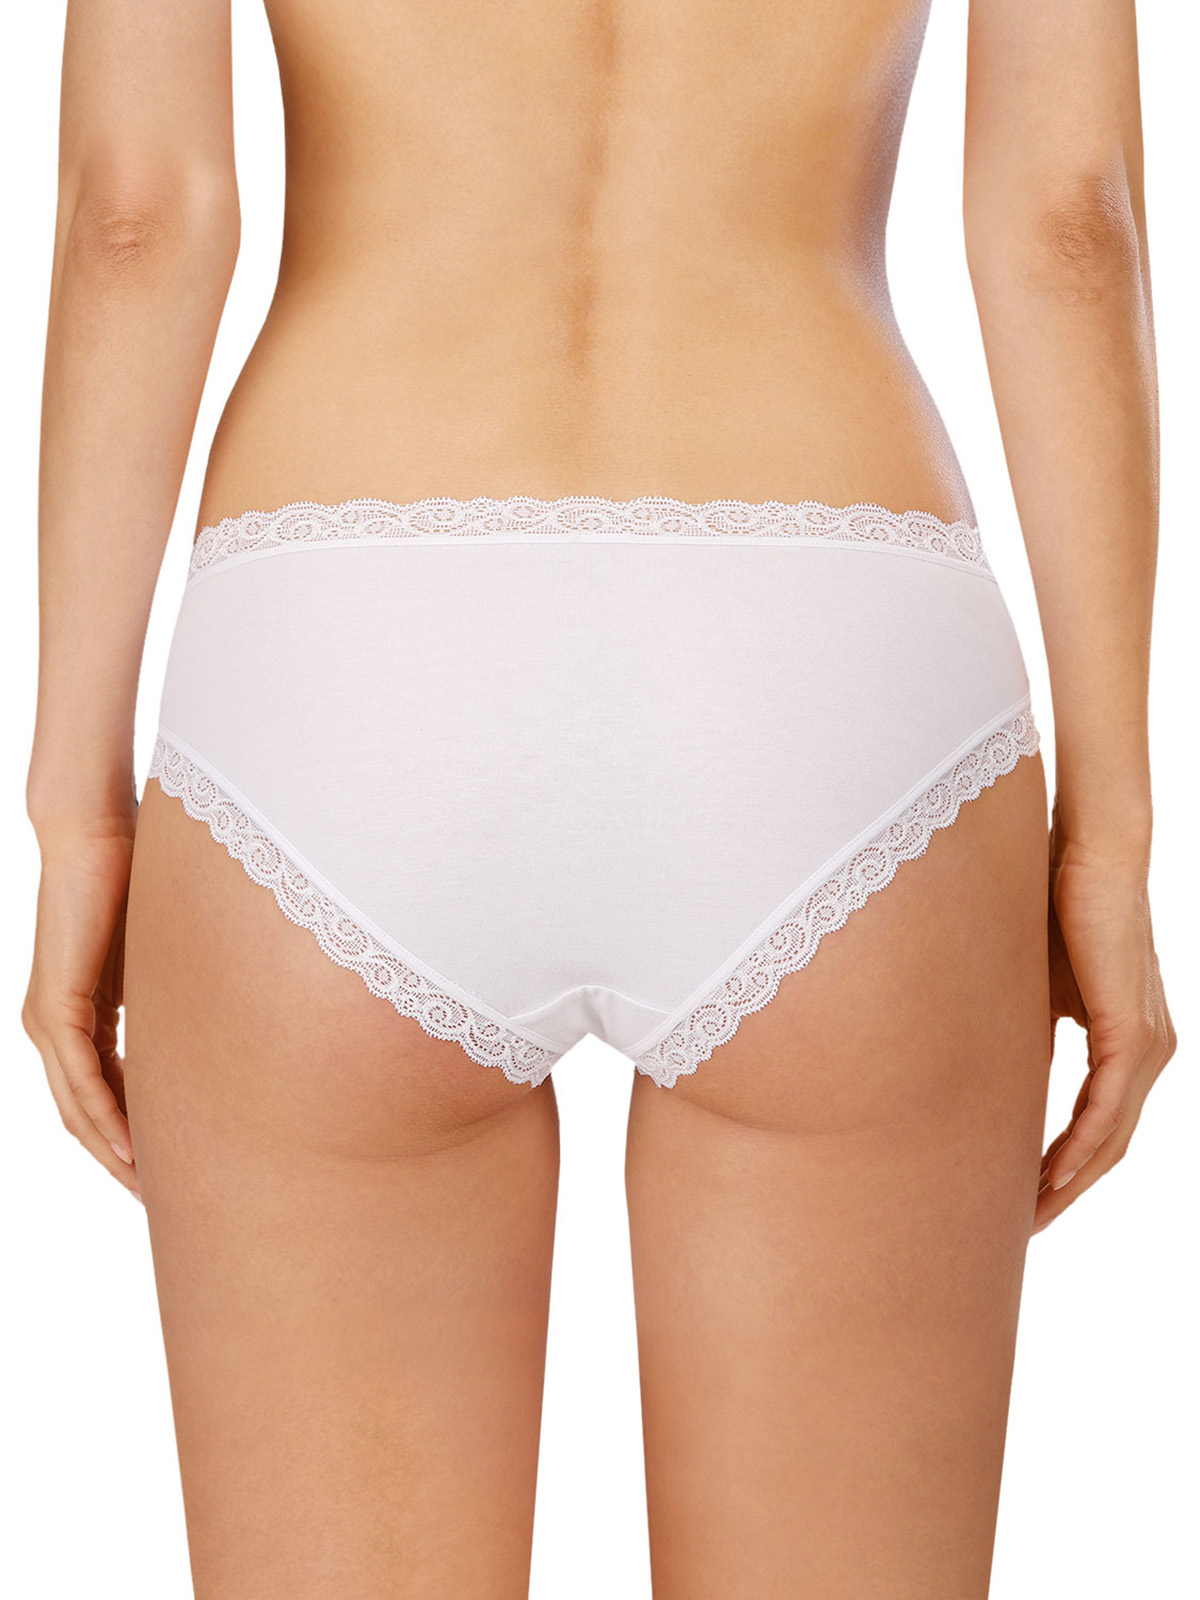 NATURANA Women's Brief 2131